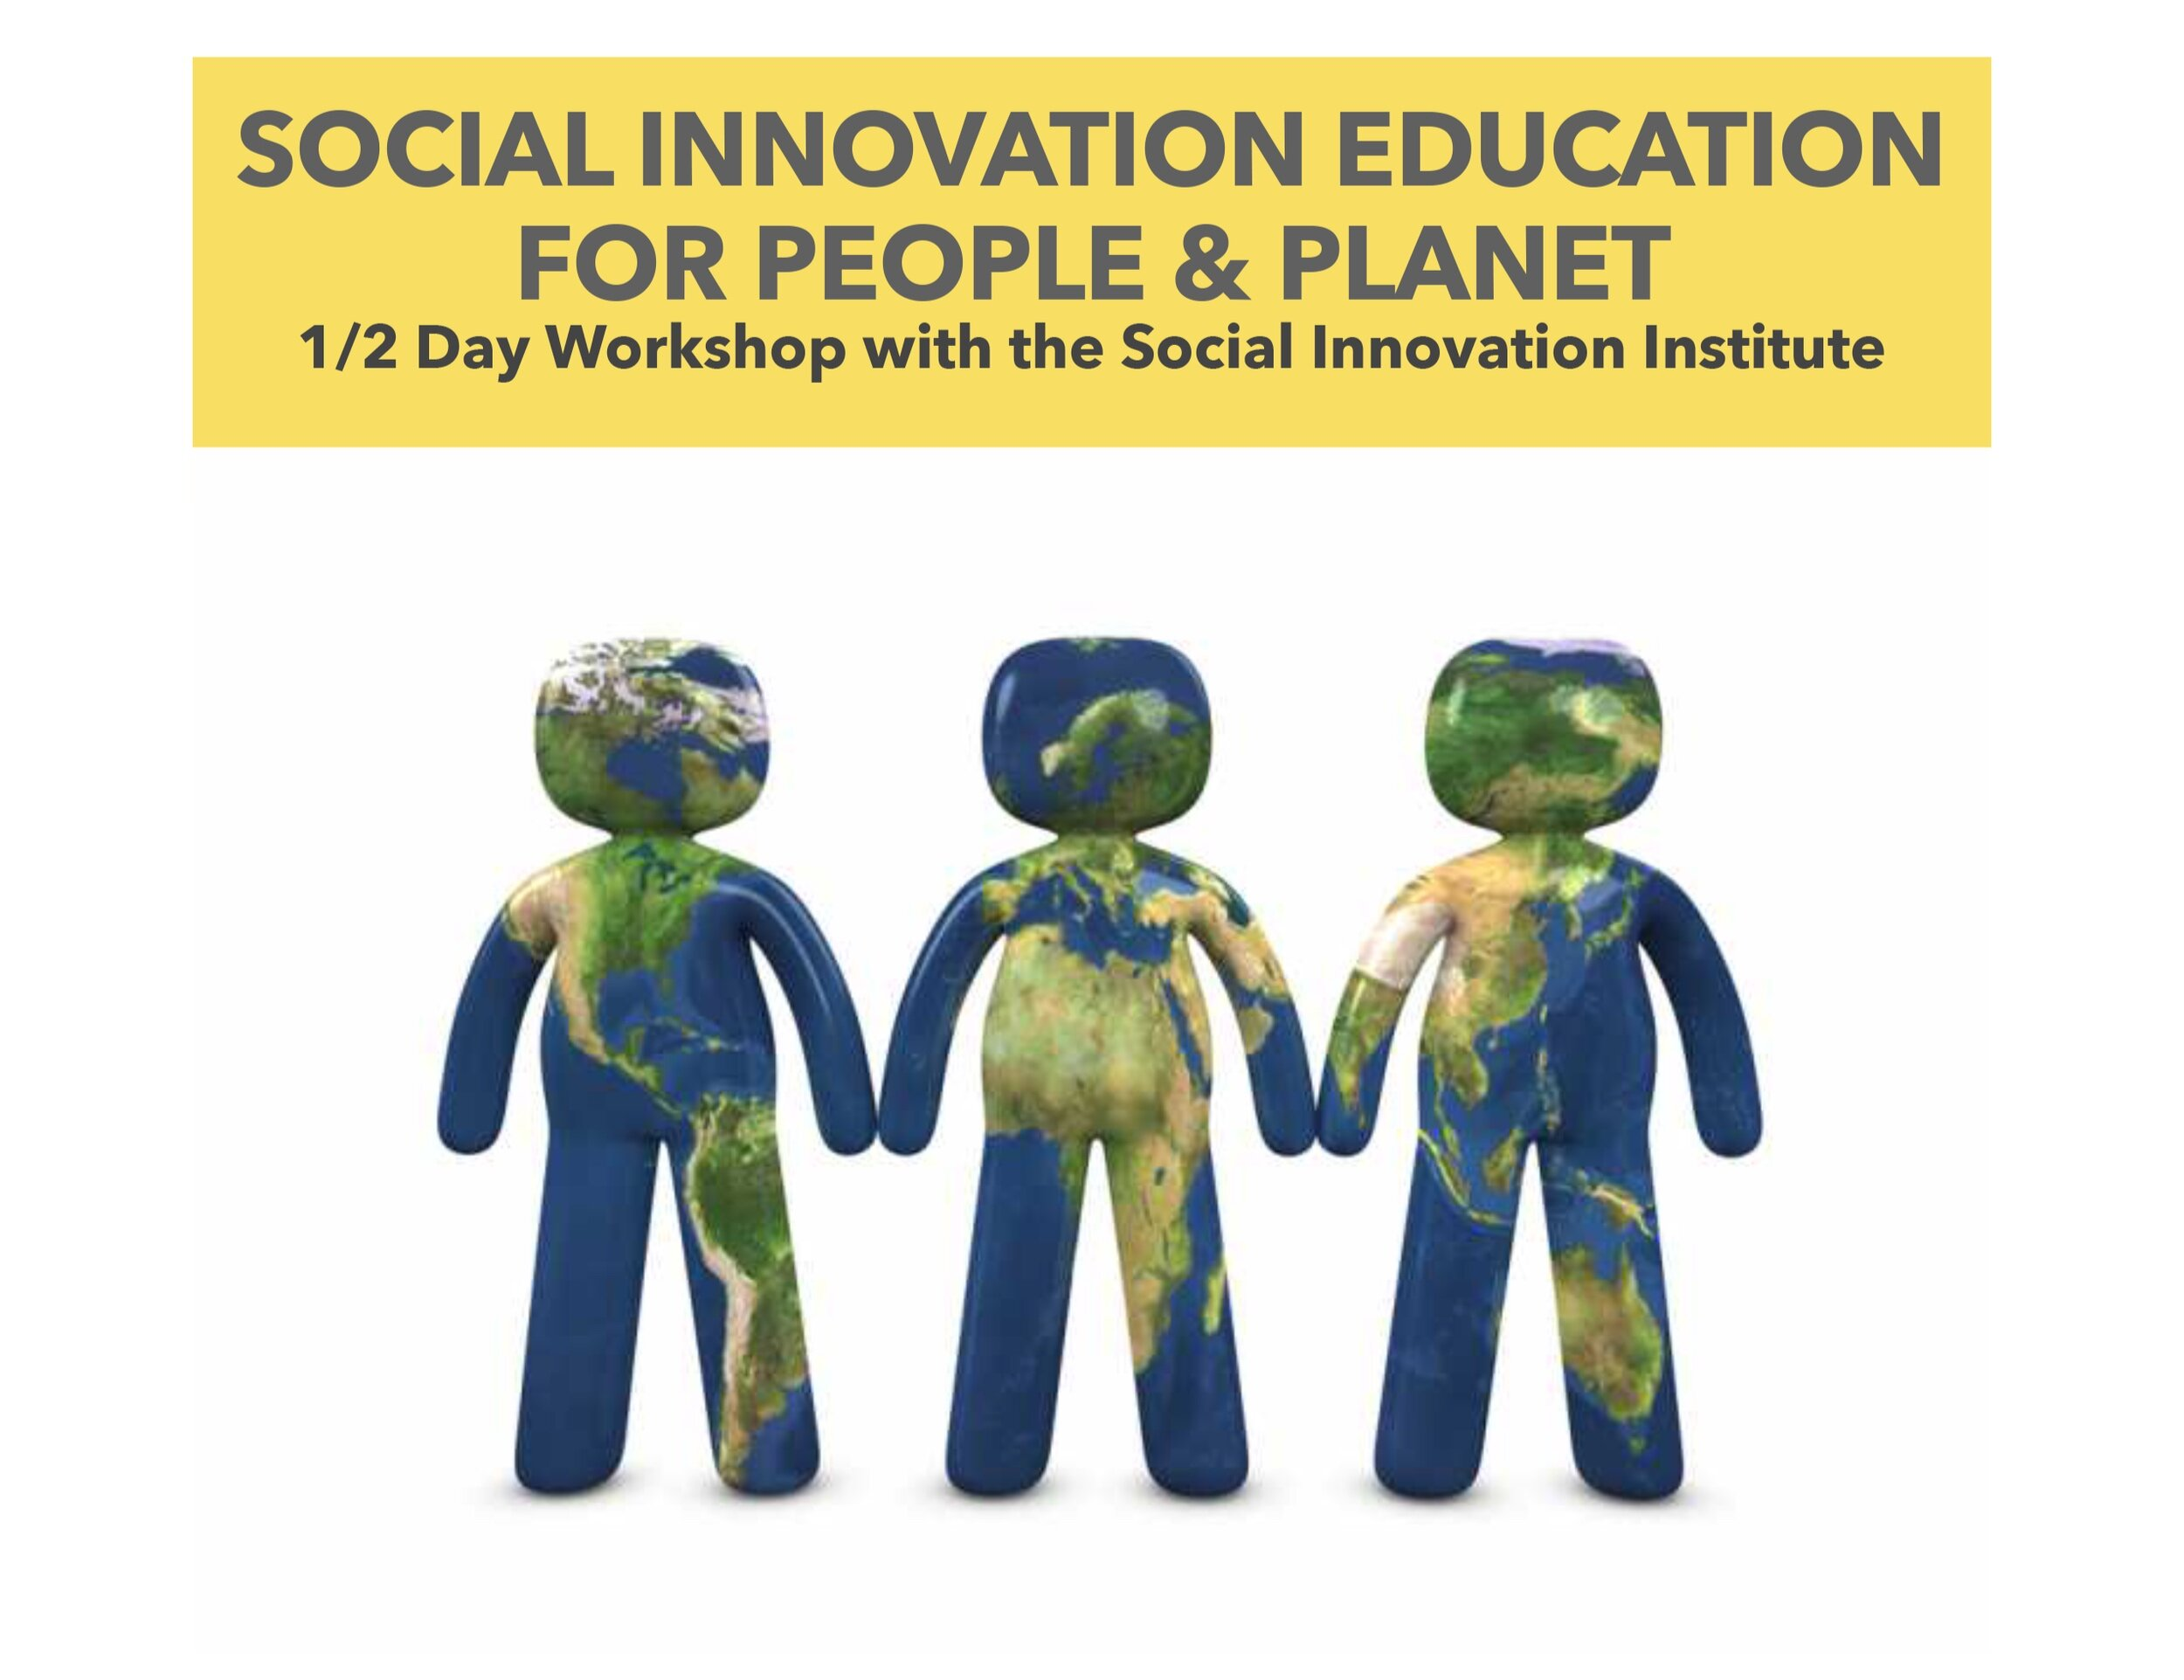 SI+Education+for+People+and+Planet.jpg